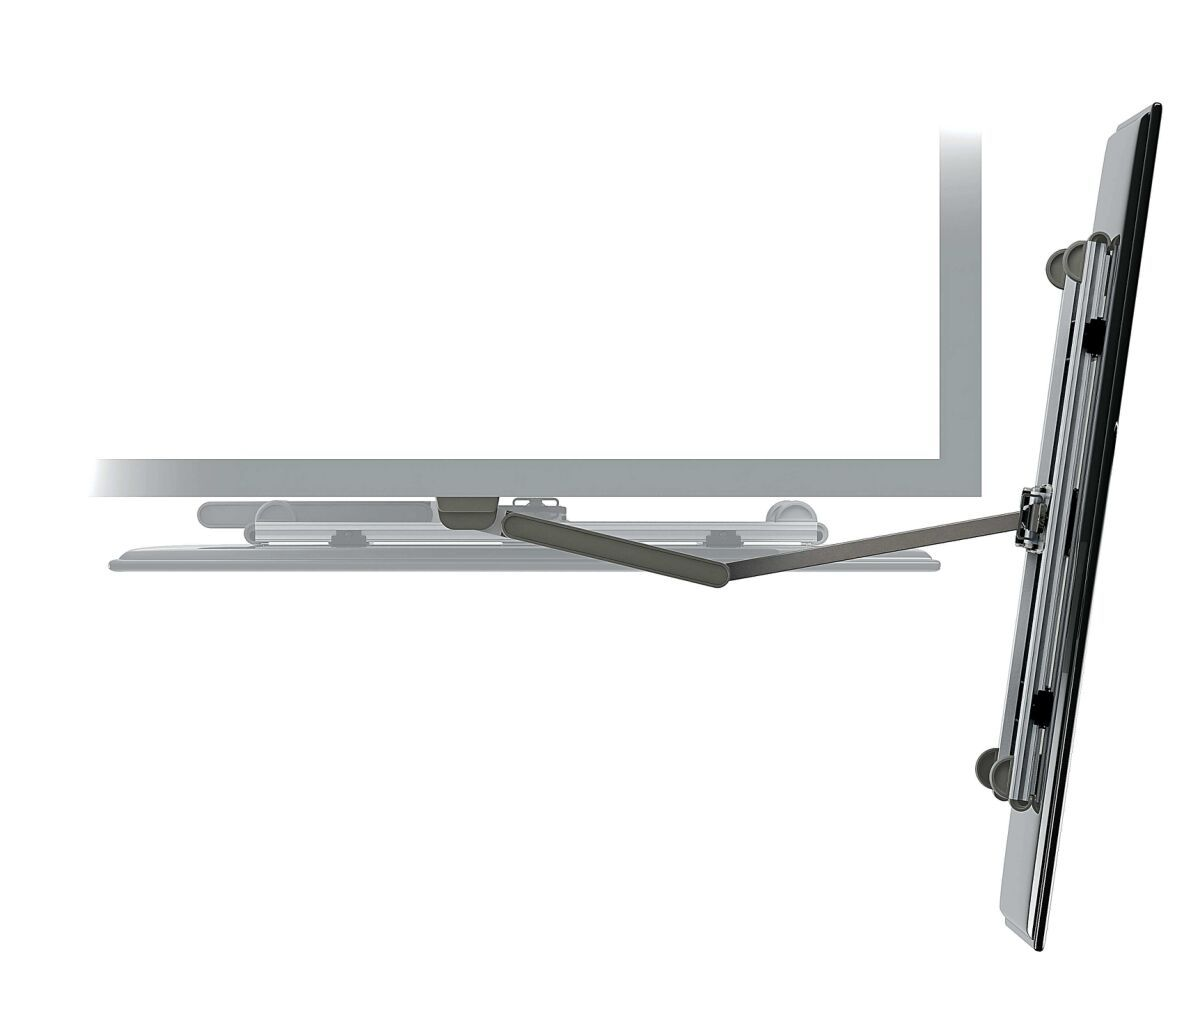 Vogel's THIN 245 UltraThin Full-Motion TV Wall Mount (white) - Suitable for 26 up to 55 inch TVs - Full motion (up to 180°) - Tilt up to 20° - Top view